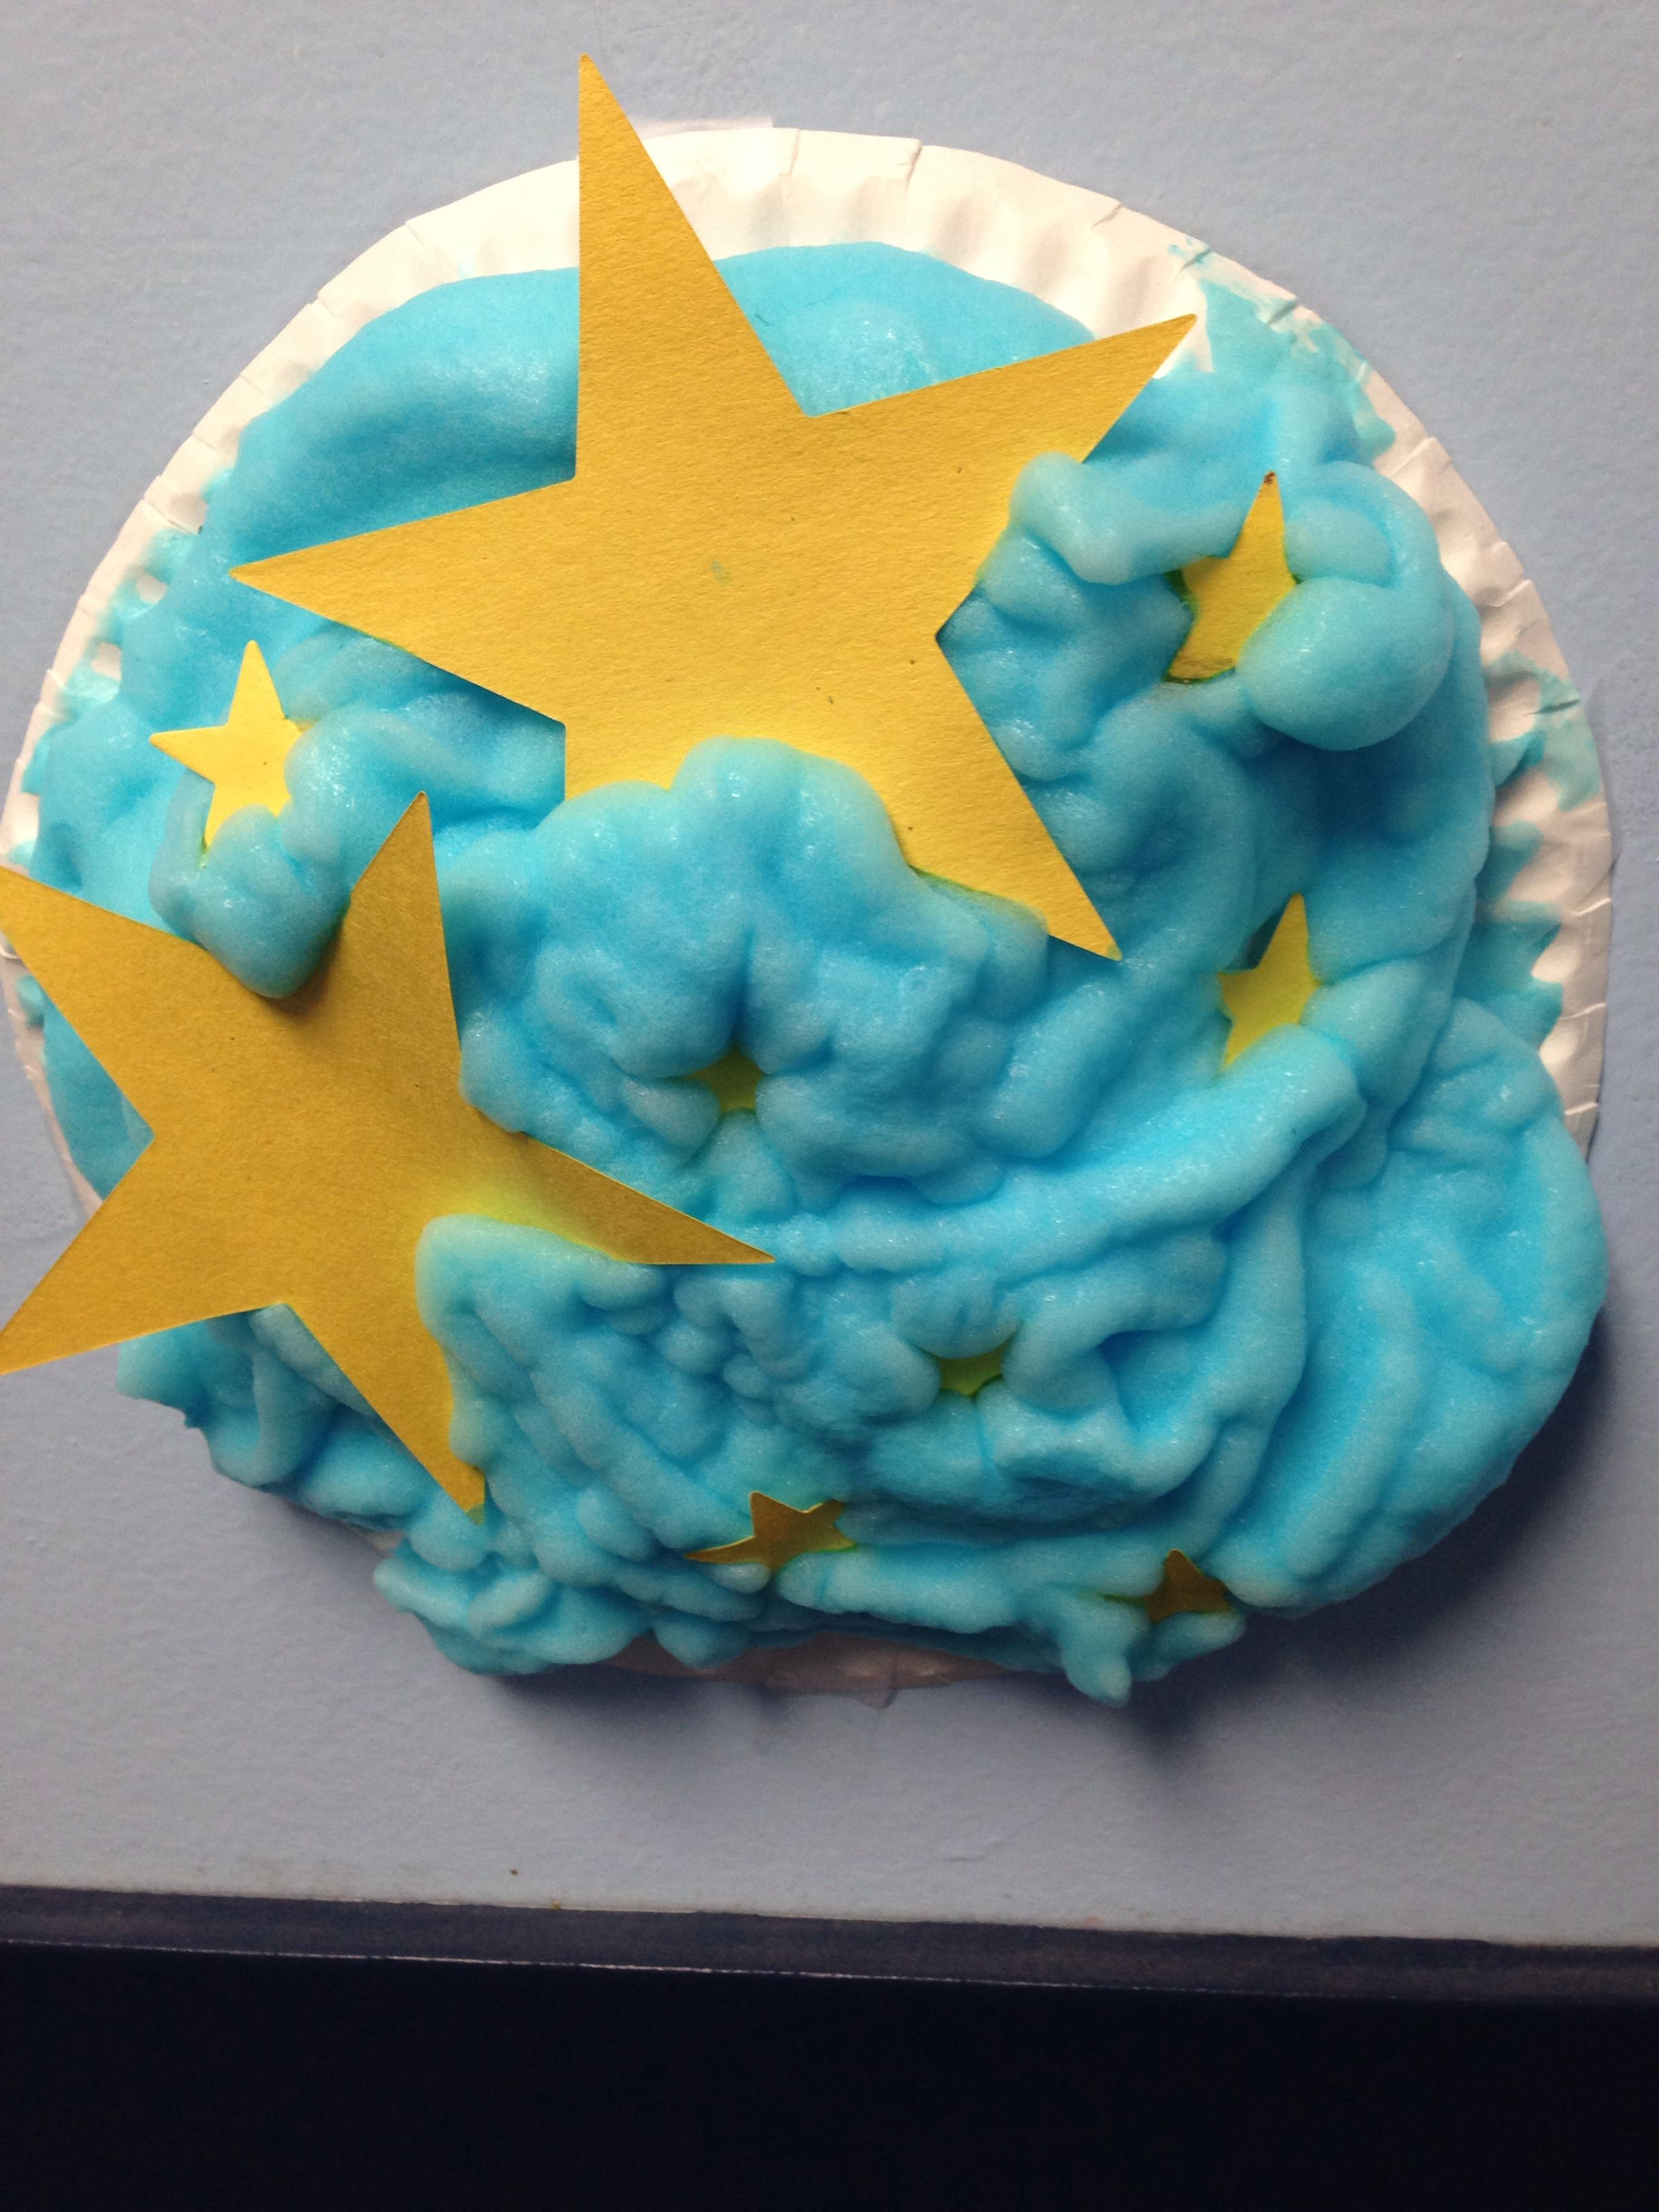 Night Sky Craft For Kids Mix Glue With Shaving Cream And Add A Couple Drops Of Blue Food